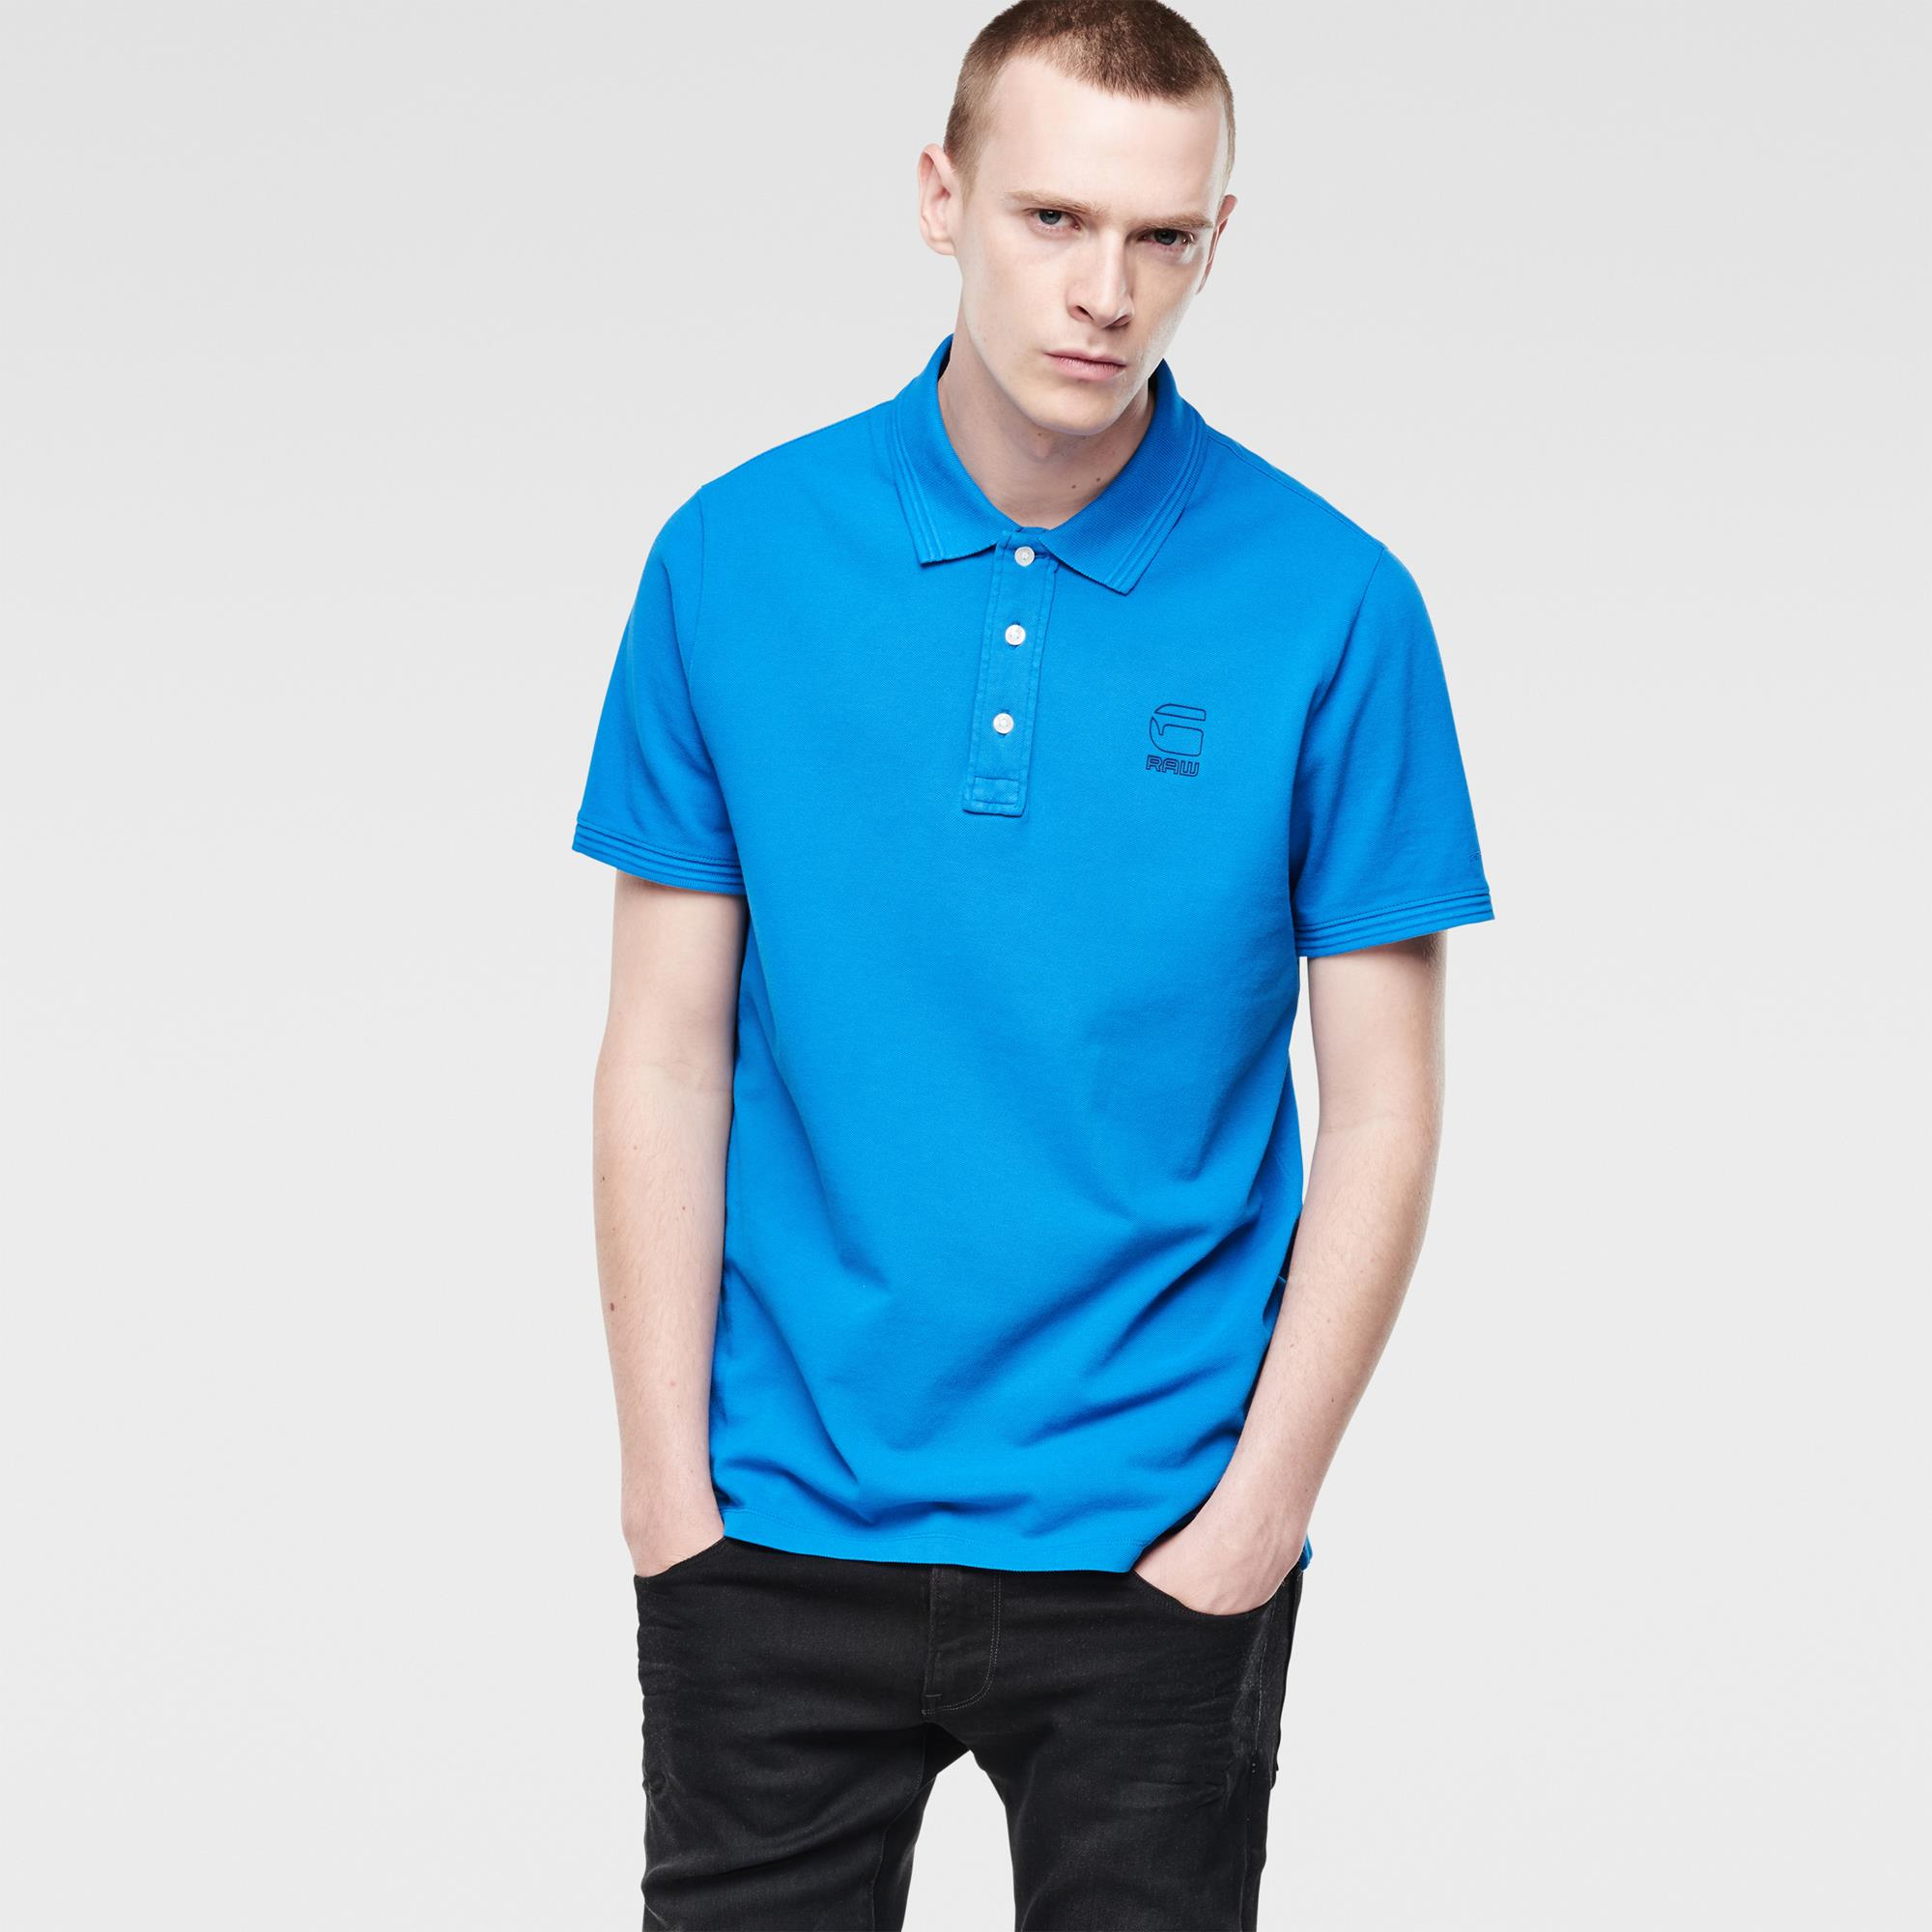 G-Star Raw heren polo